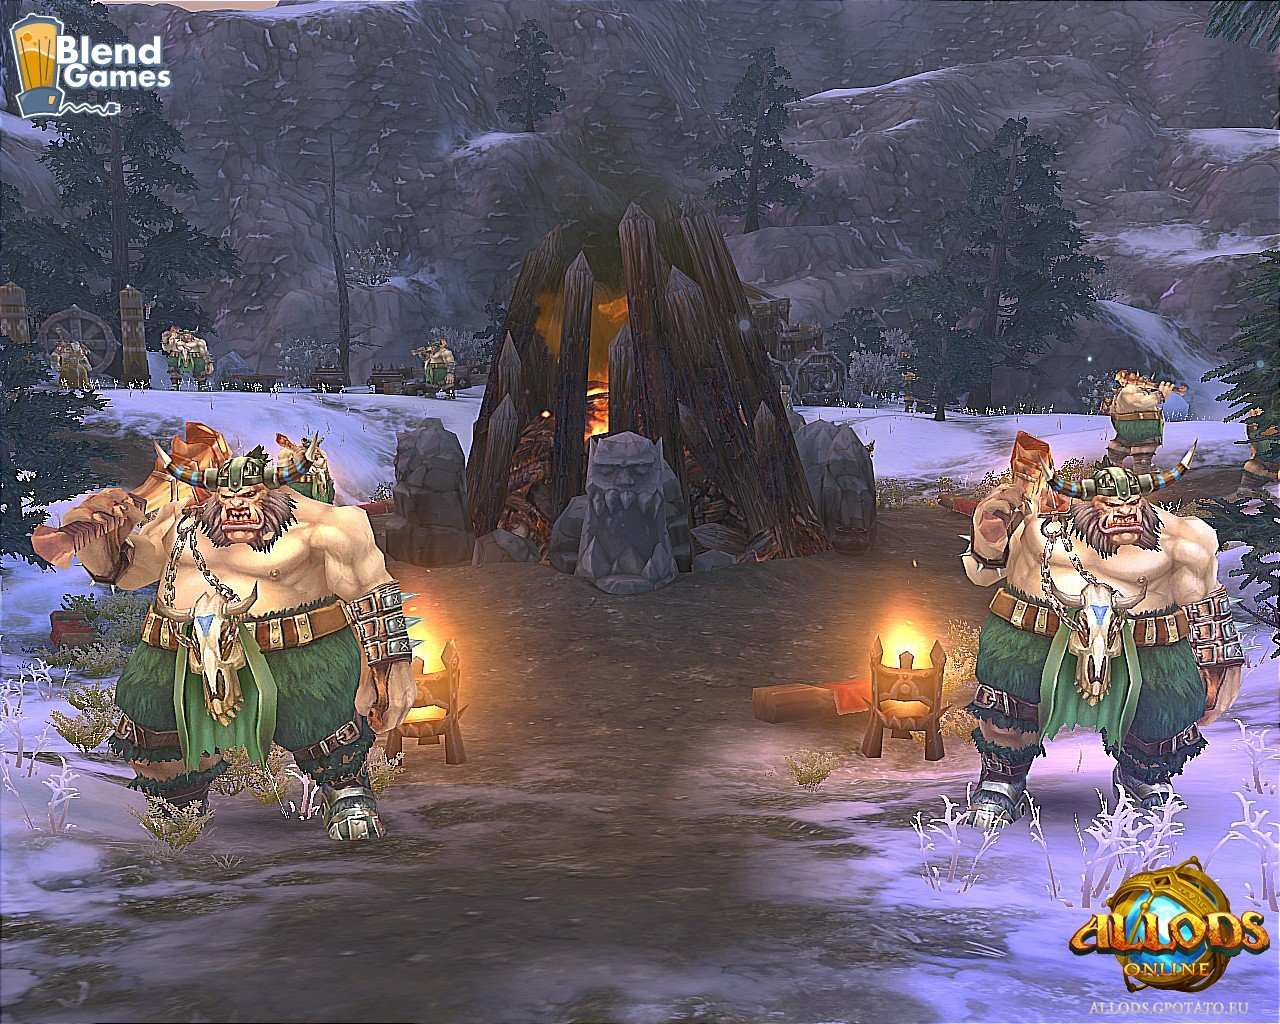 Allods Online Final Closed-Beta Screenshots #11485